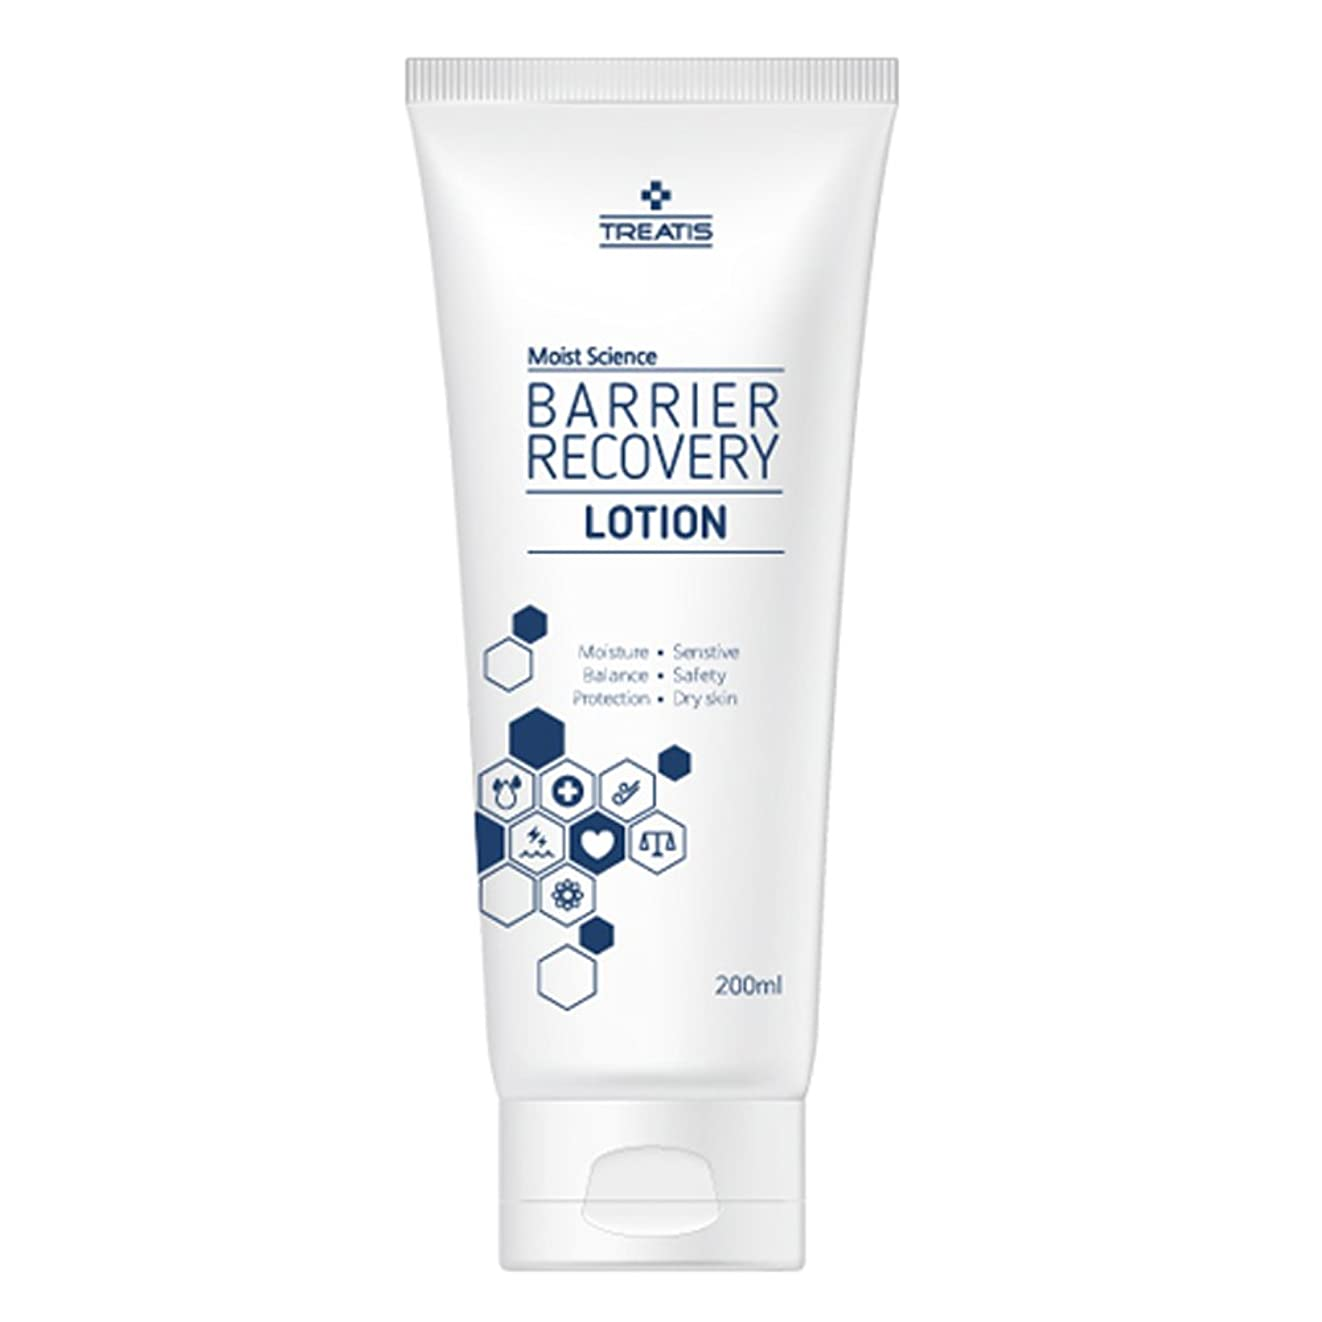 火星内なる剃るTreatis barrier recovery lotion 7oz (200ml)/Moisture, Senstive, Balance, Safty, Protection, Dry skin [並行輸入品]